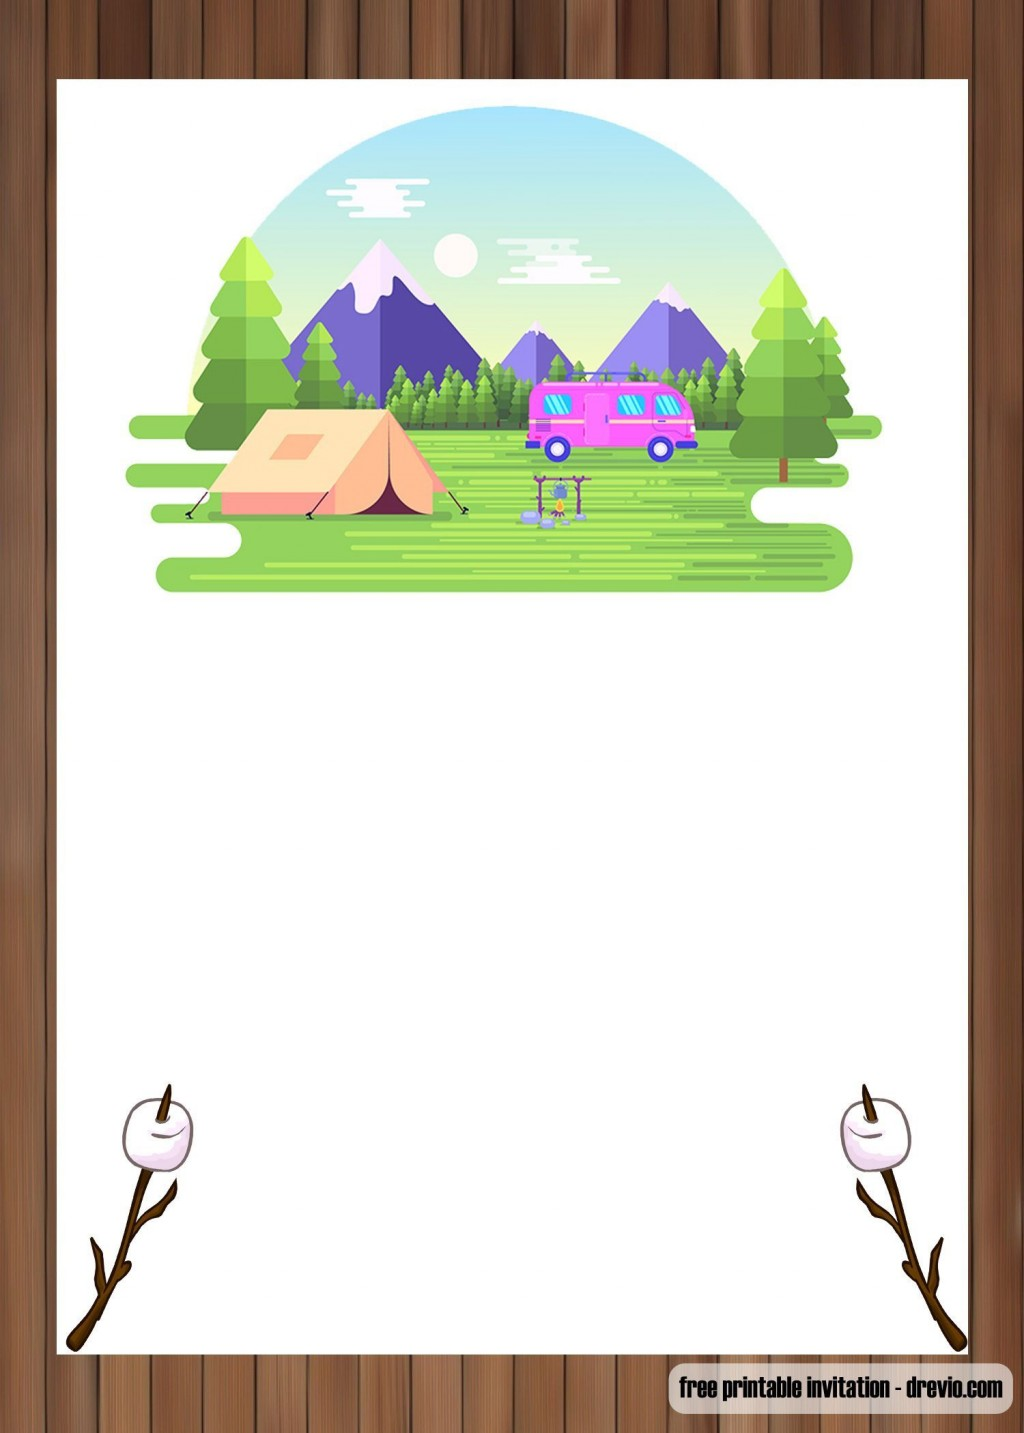 002 Phenomenal Camping Invitation Template Free Concept  Party BirthdayLarge